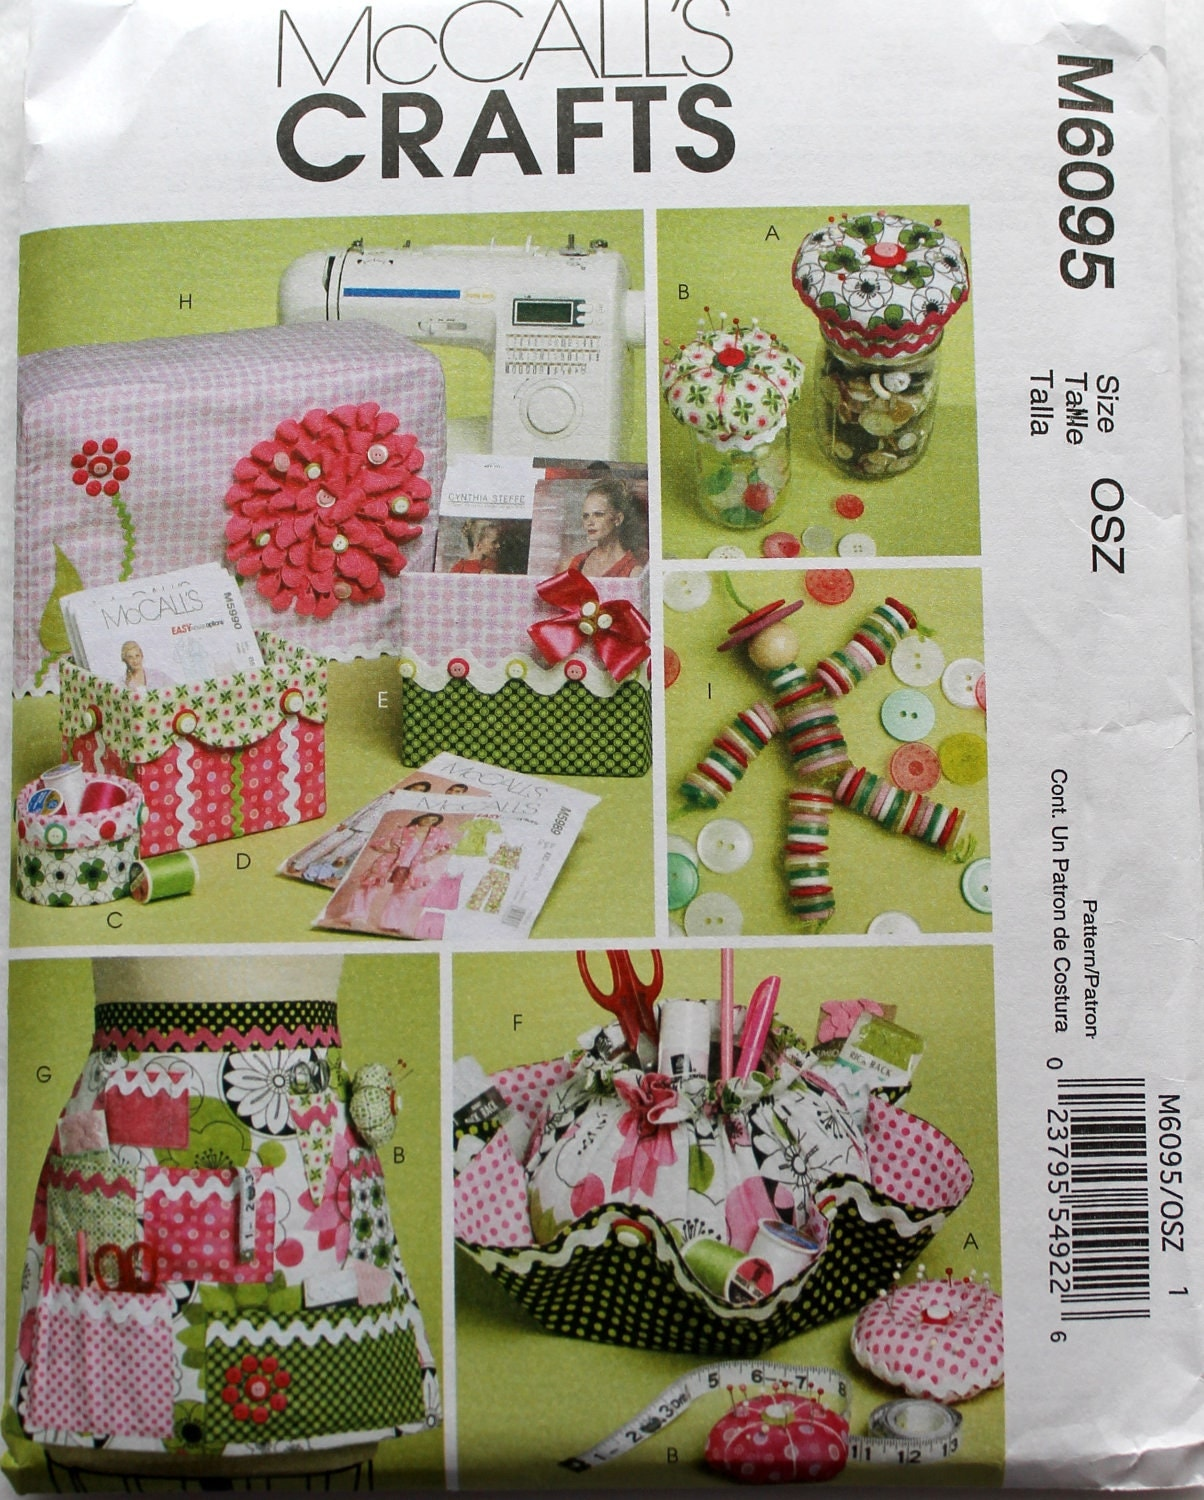 McCalls Pattern, Sewing Pattern, Paper Pattern, Craft Supplies on Etsy